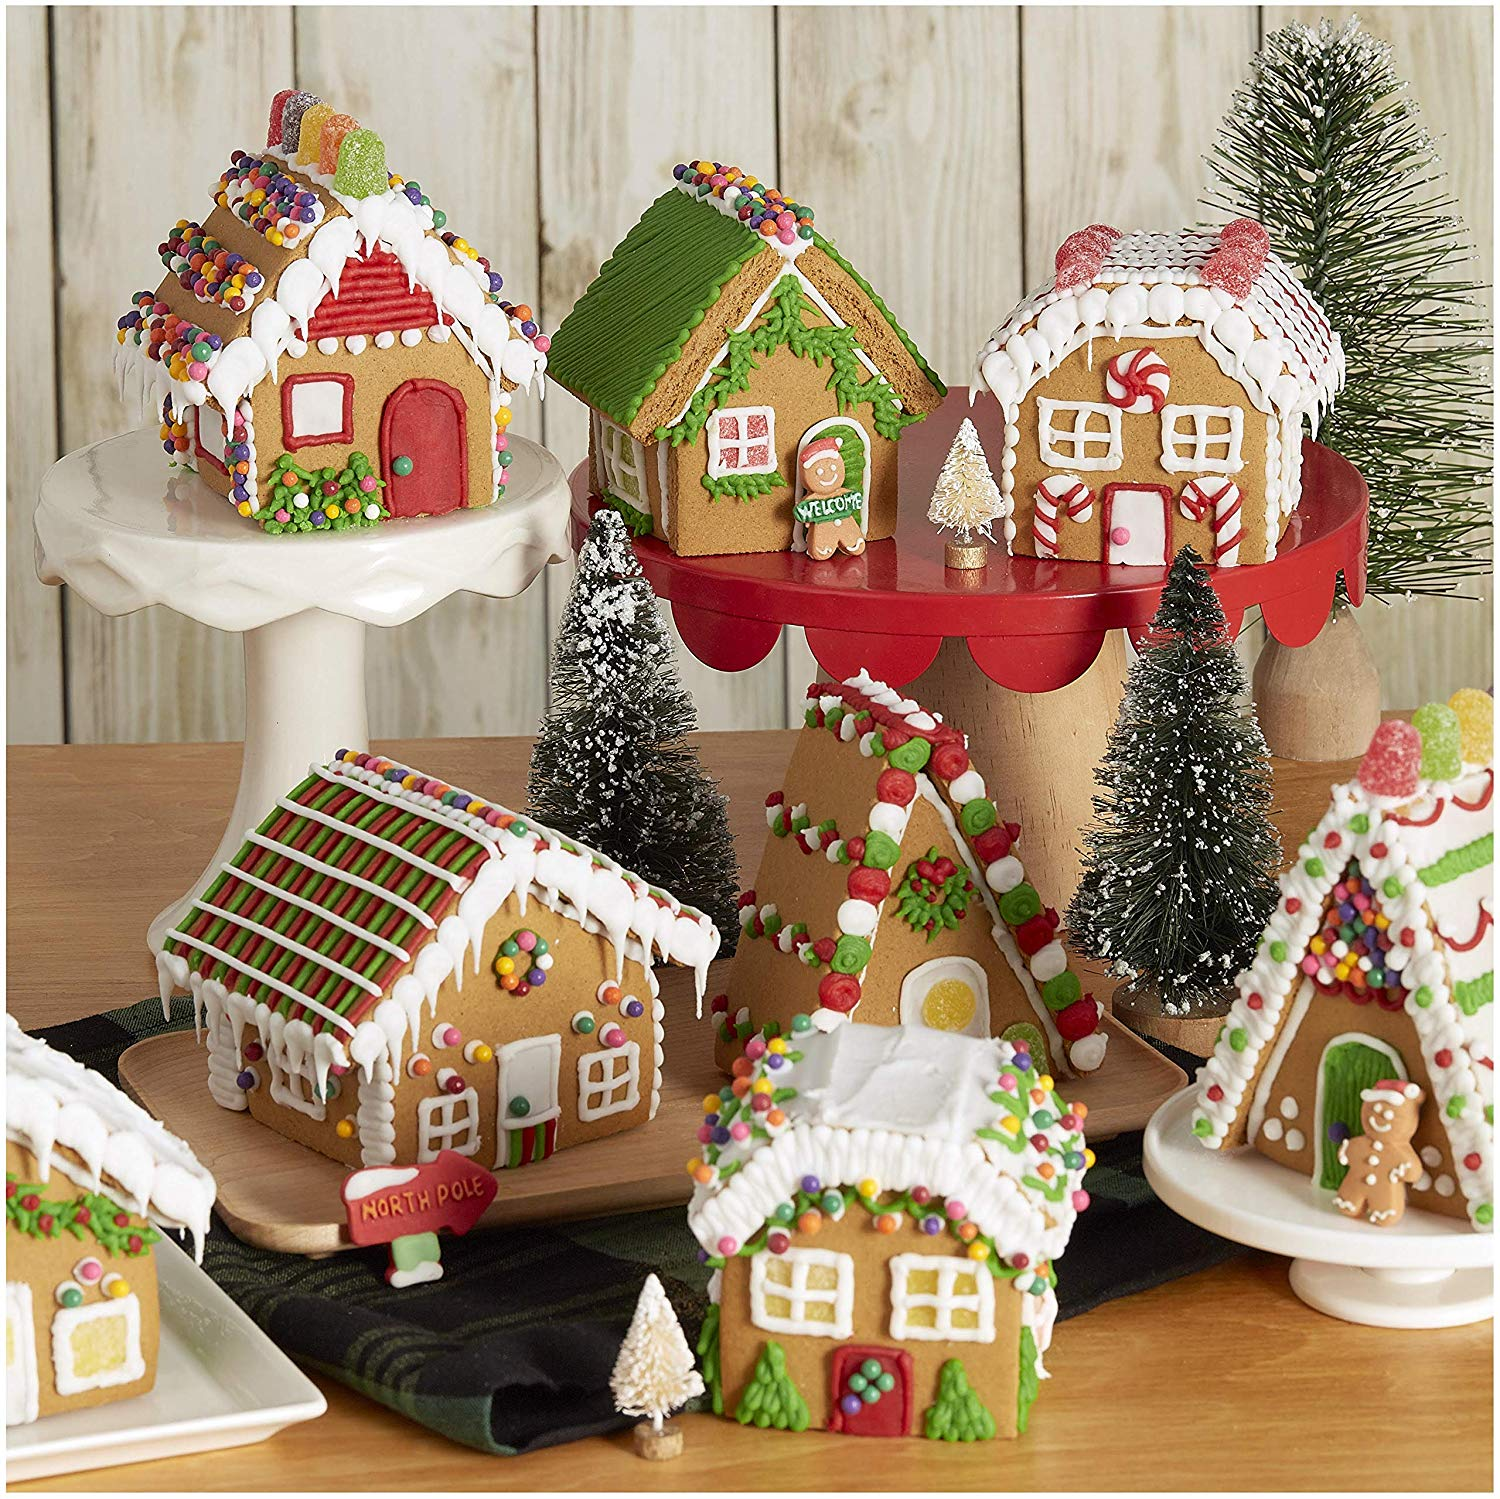 Amazon Finds: Best Gingerbread House Kit 2019